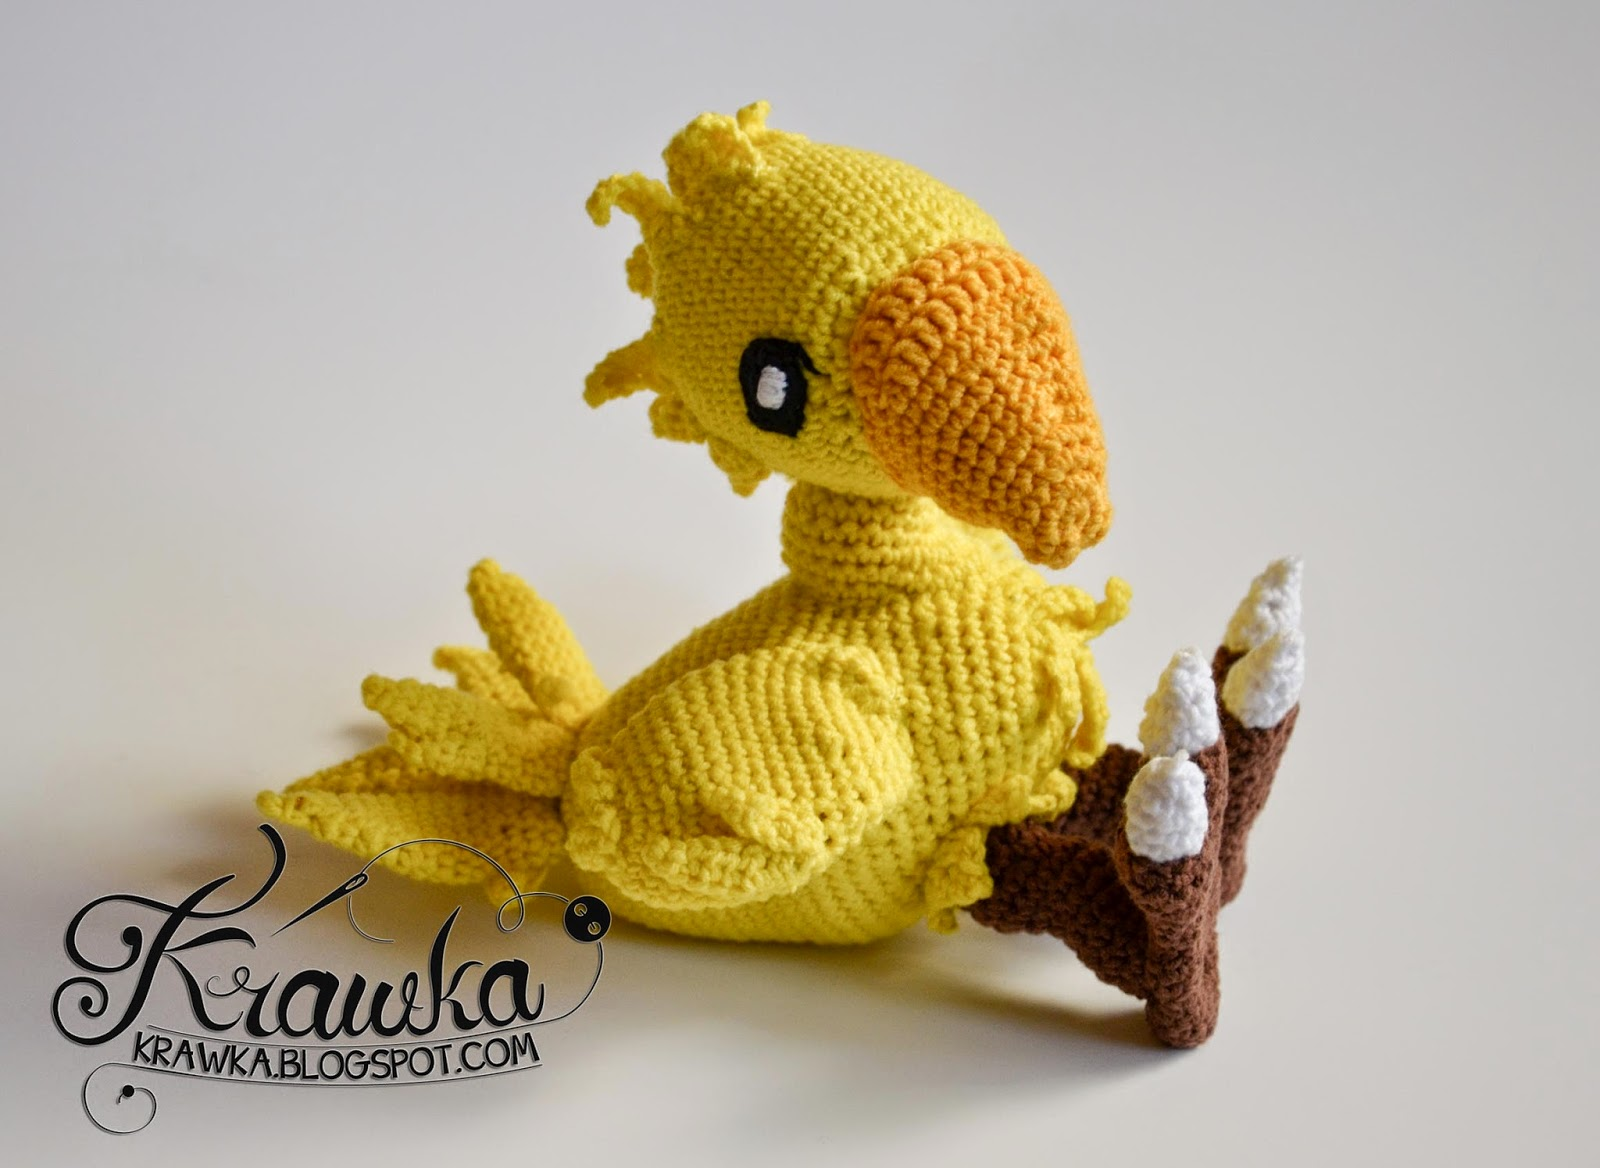 Krawka: Chocobo from Final Fantasy - crochet plush, wired inside - fully adjustable.